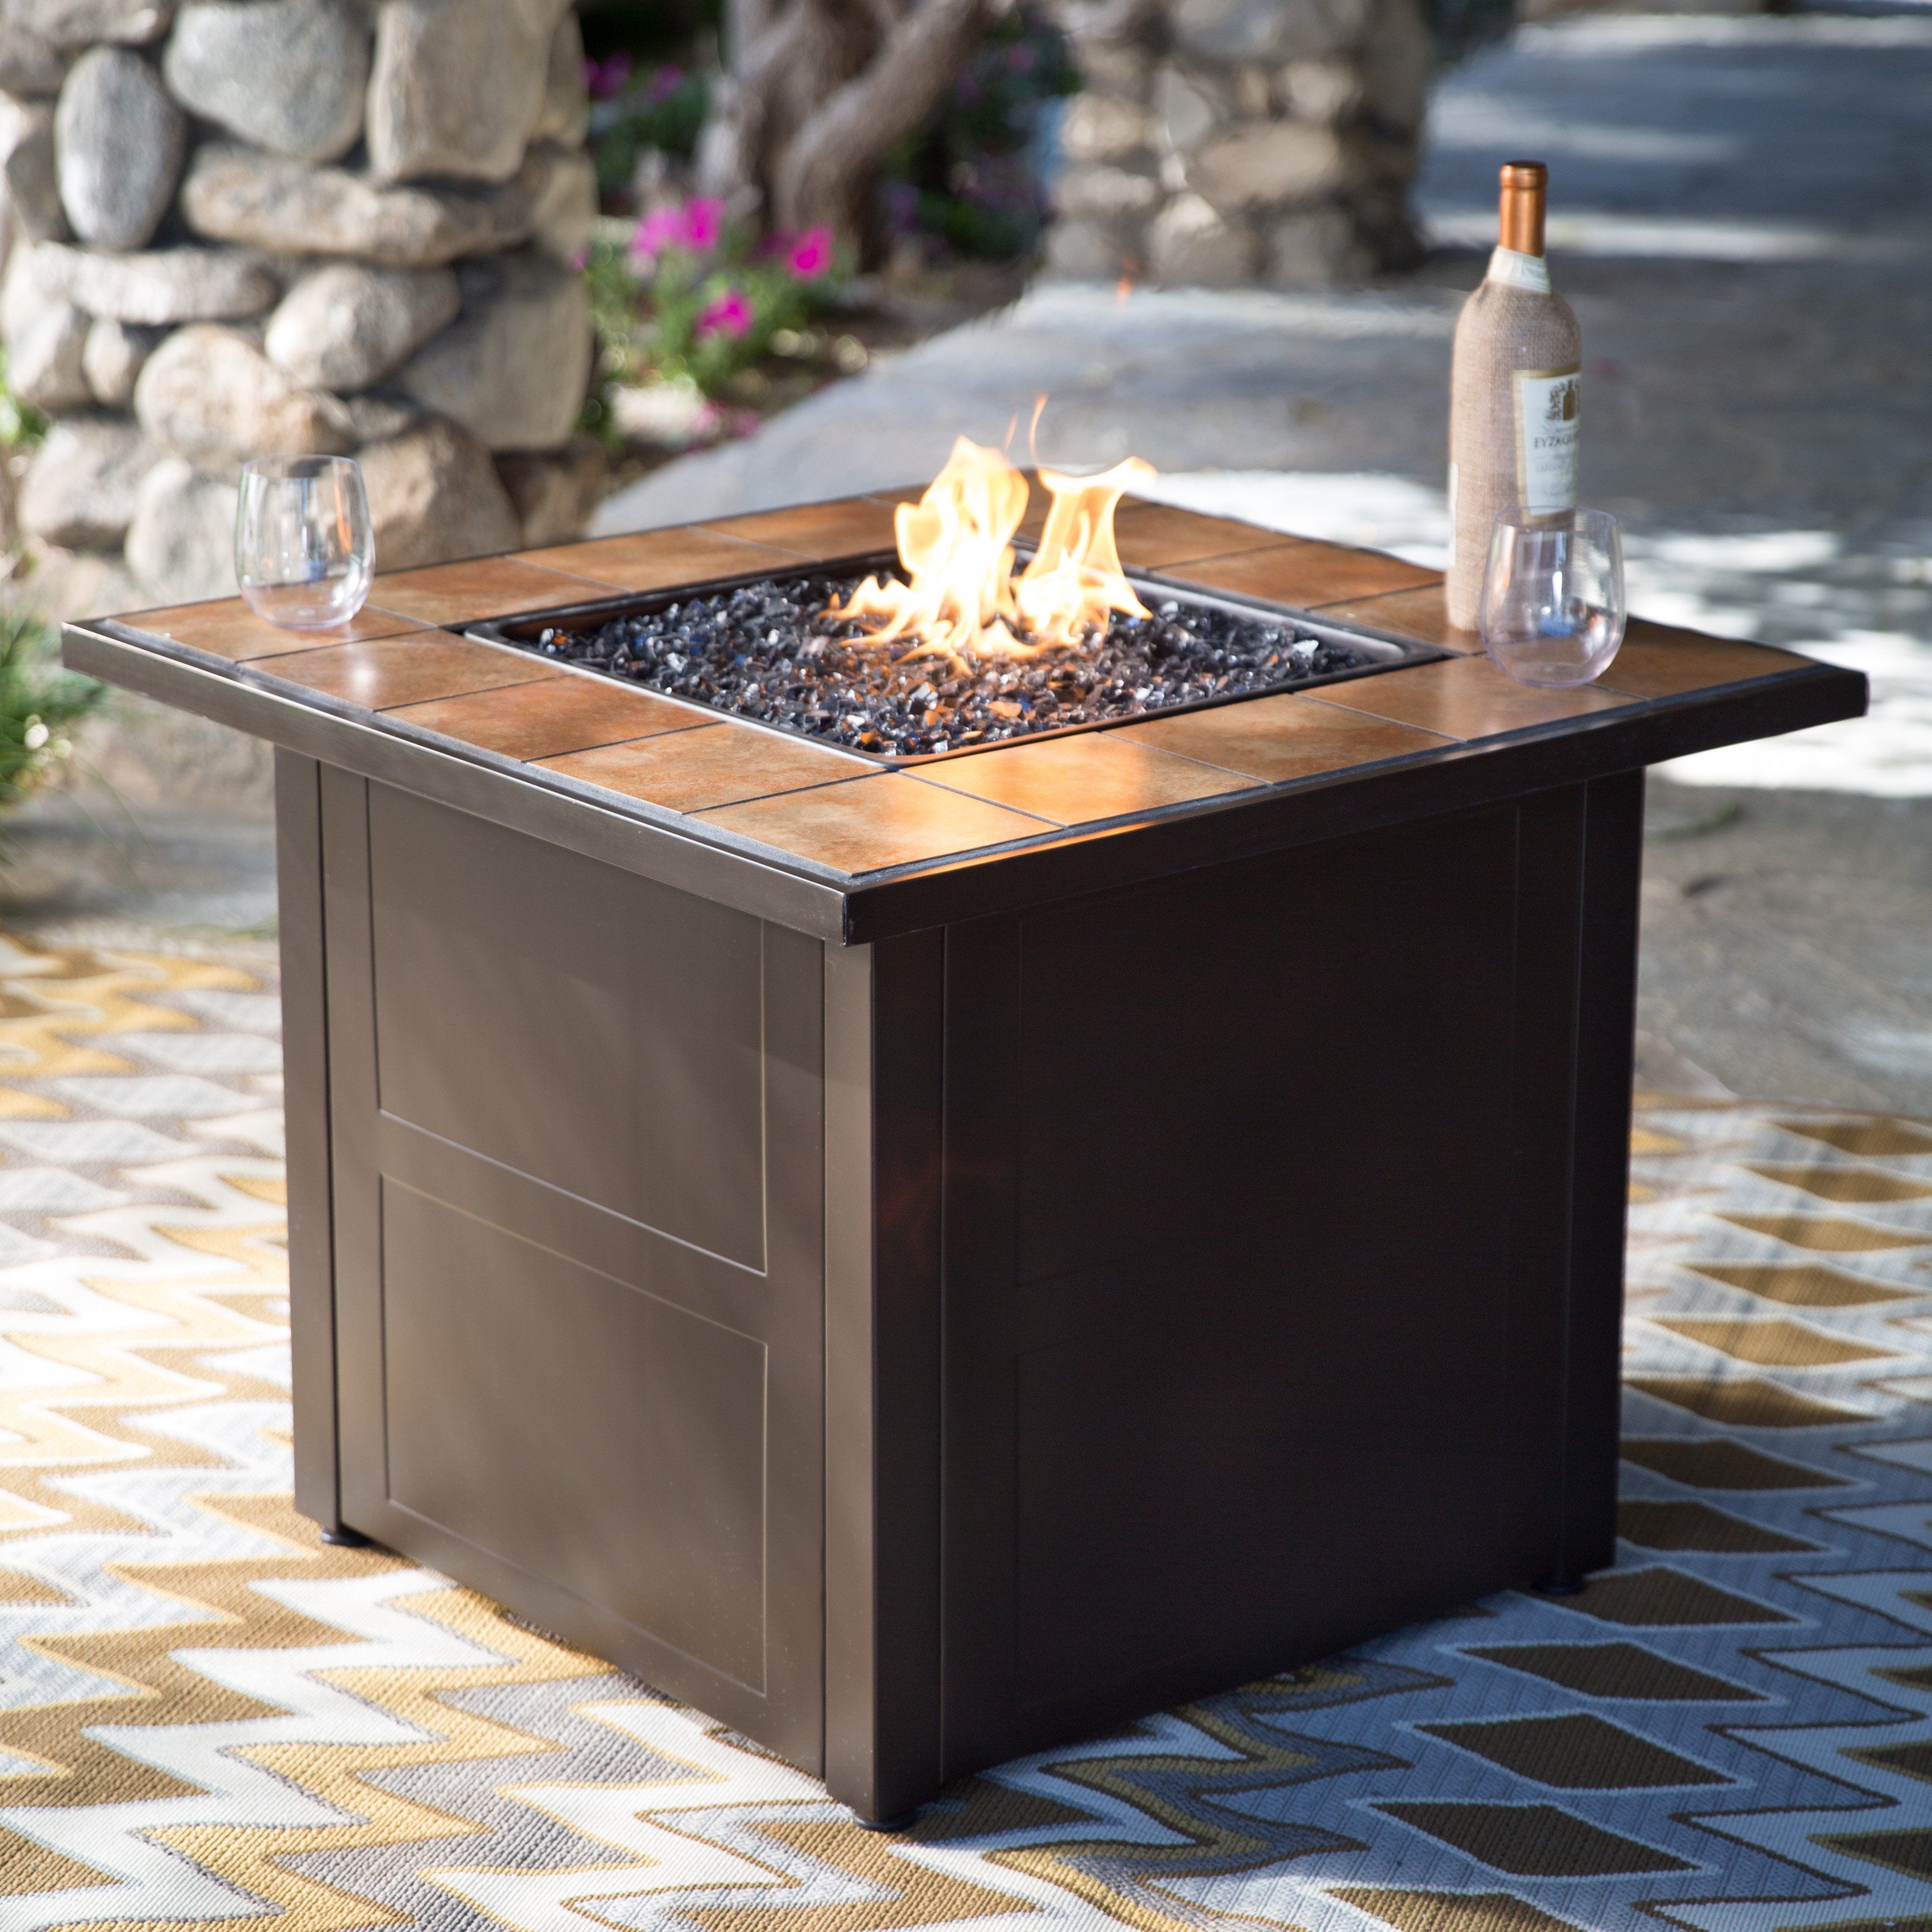 Red Ember Desert Sand 32 In Square Propane Fire Pit Table Propane Fire Pit Table Outdoor Propane Fire Pit Fire Pit Backyard